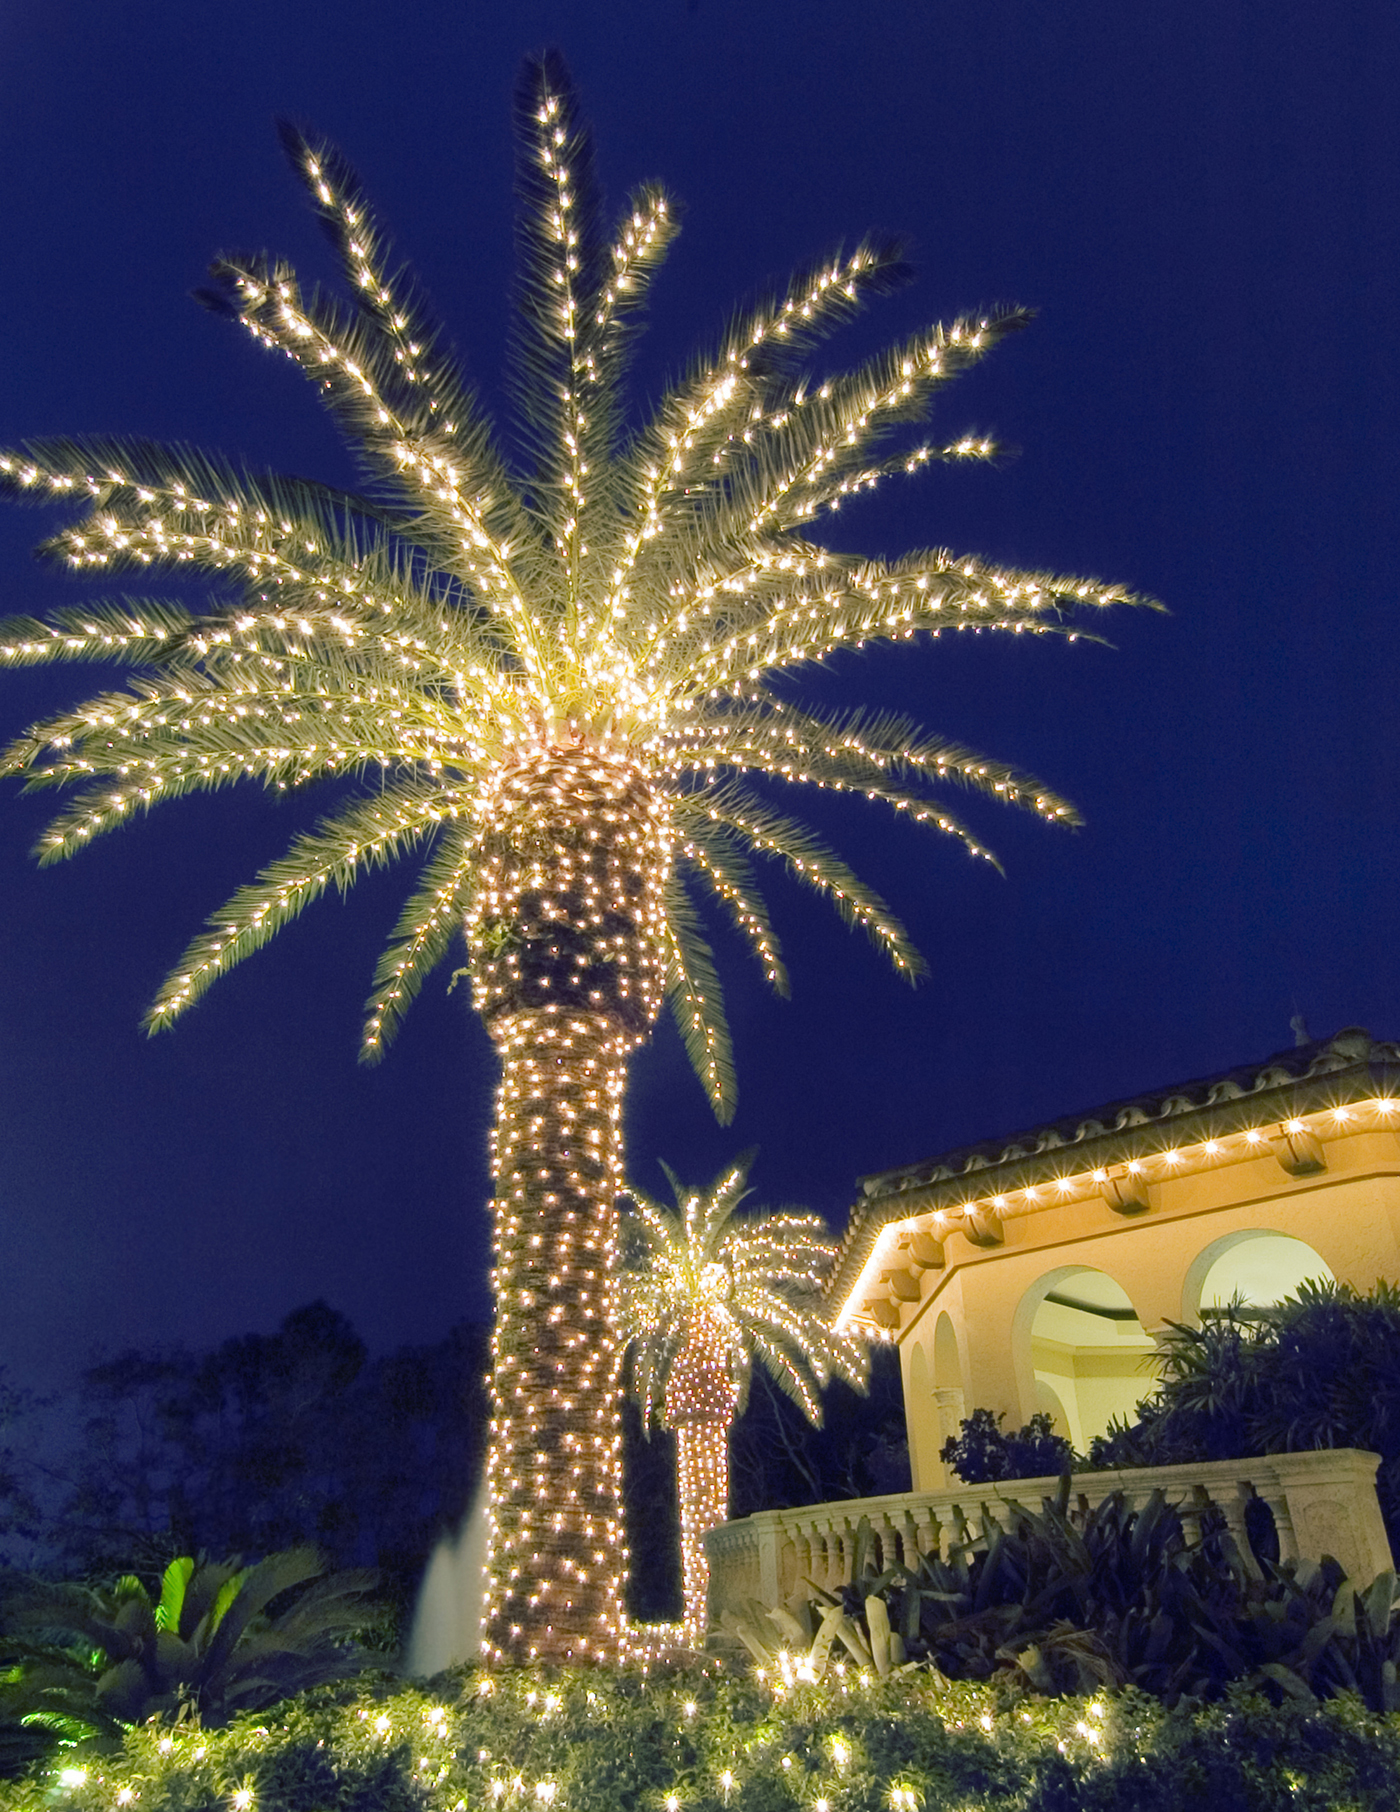 Commercial christmas decorations outdoor - Now Is The Time To Schedule Your Professional Outdoor Christmas Decorations Installation We Install Residential And Commercial Lights Alike